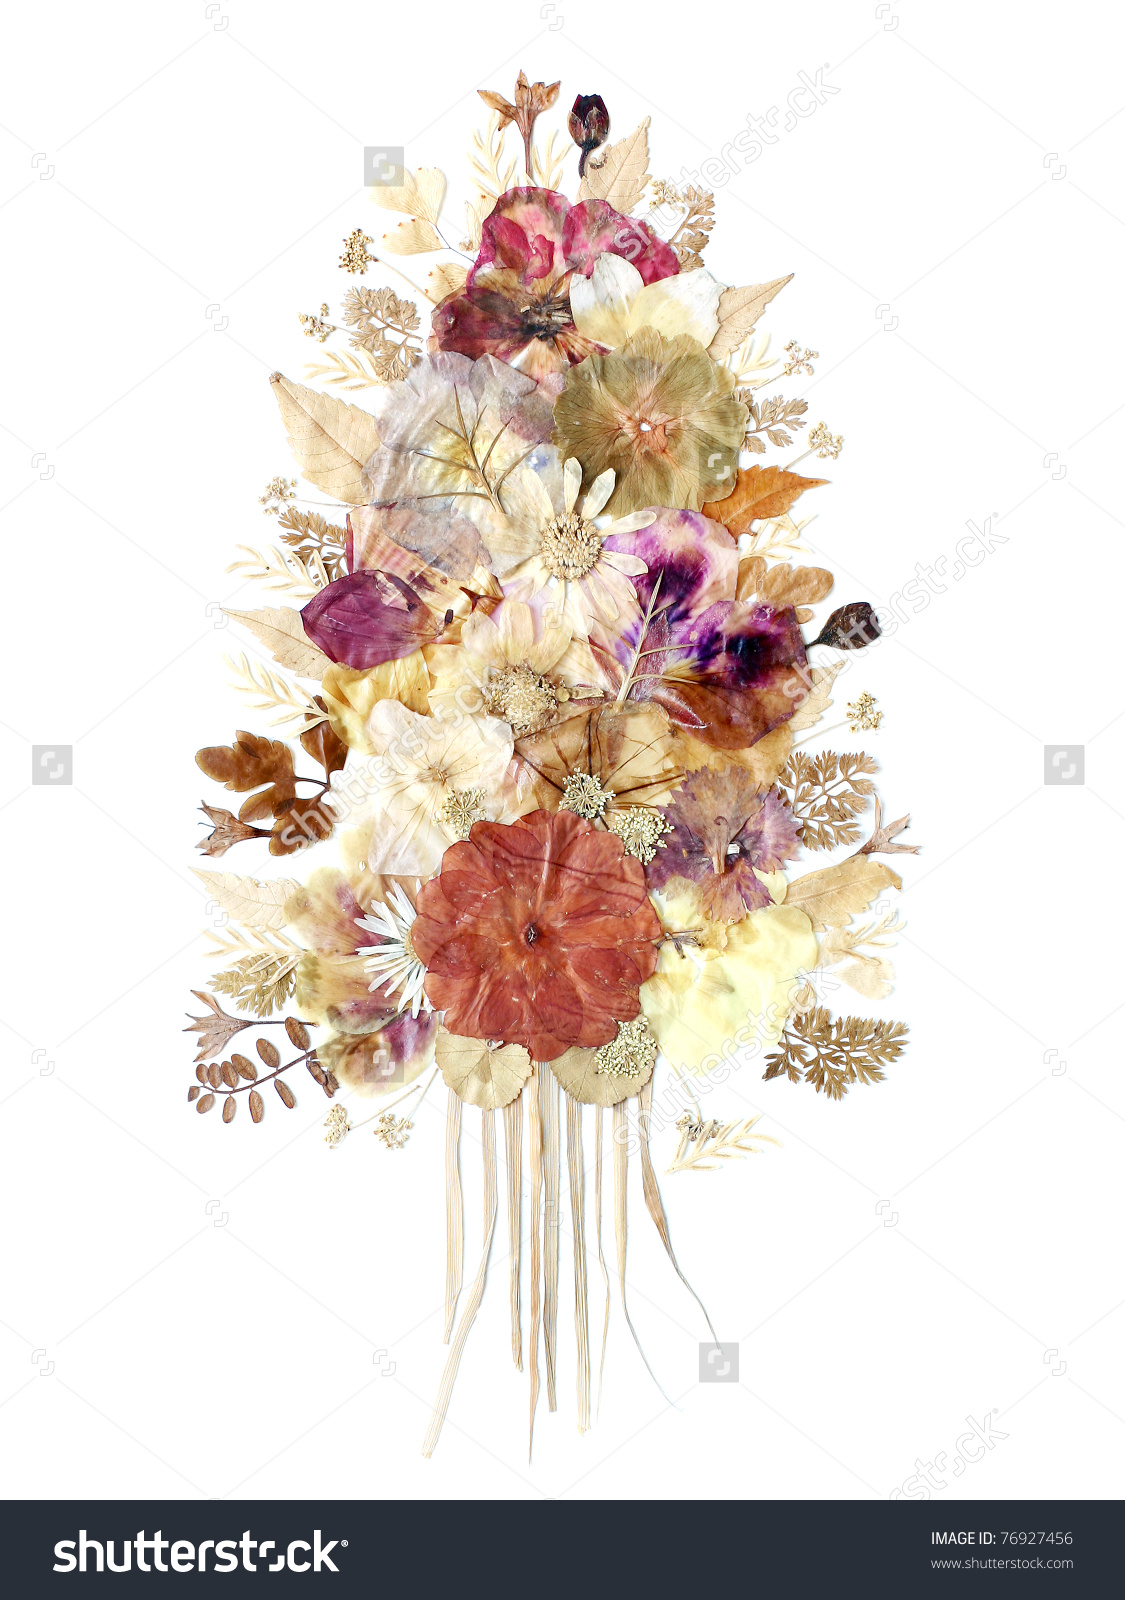 dried flower clipart 20 free cliparts